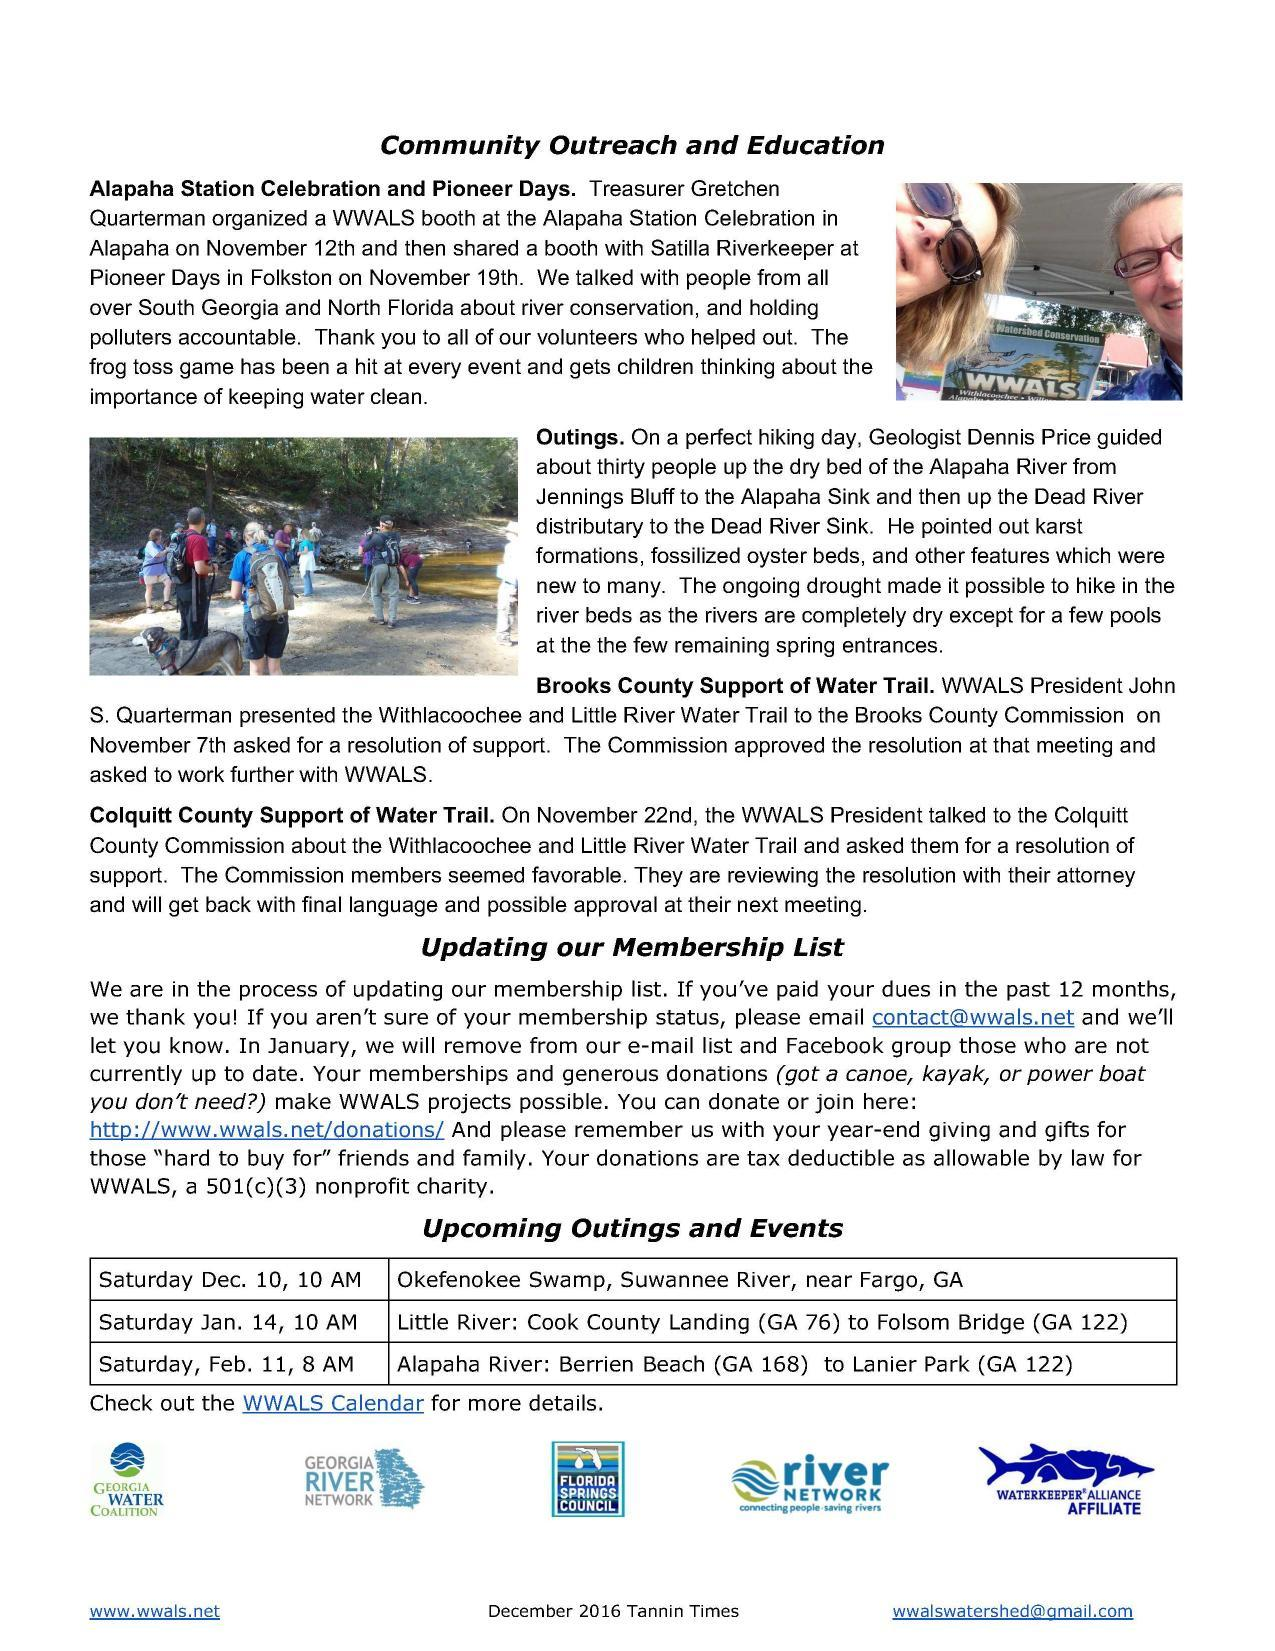 1275x1651 Alapaha Station Celebration, Okefenokee Pioneer Days, Outings, Water Trails, Membership, in December Tannin Times, by WWALS, 0 December 2016